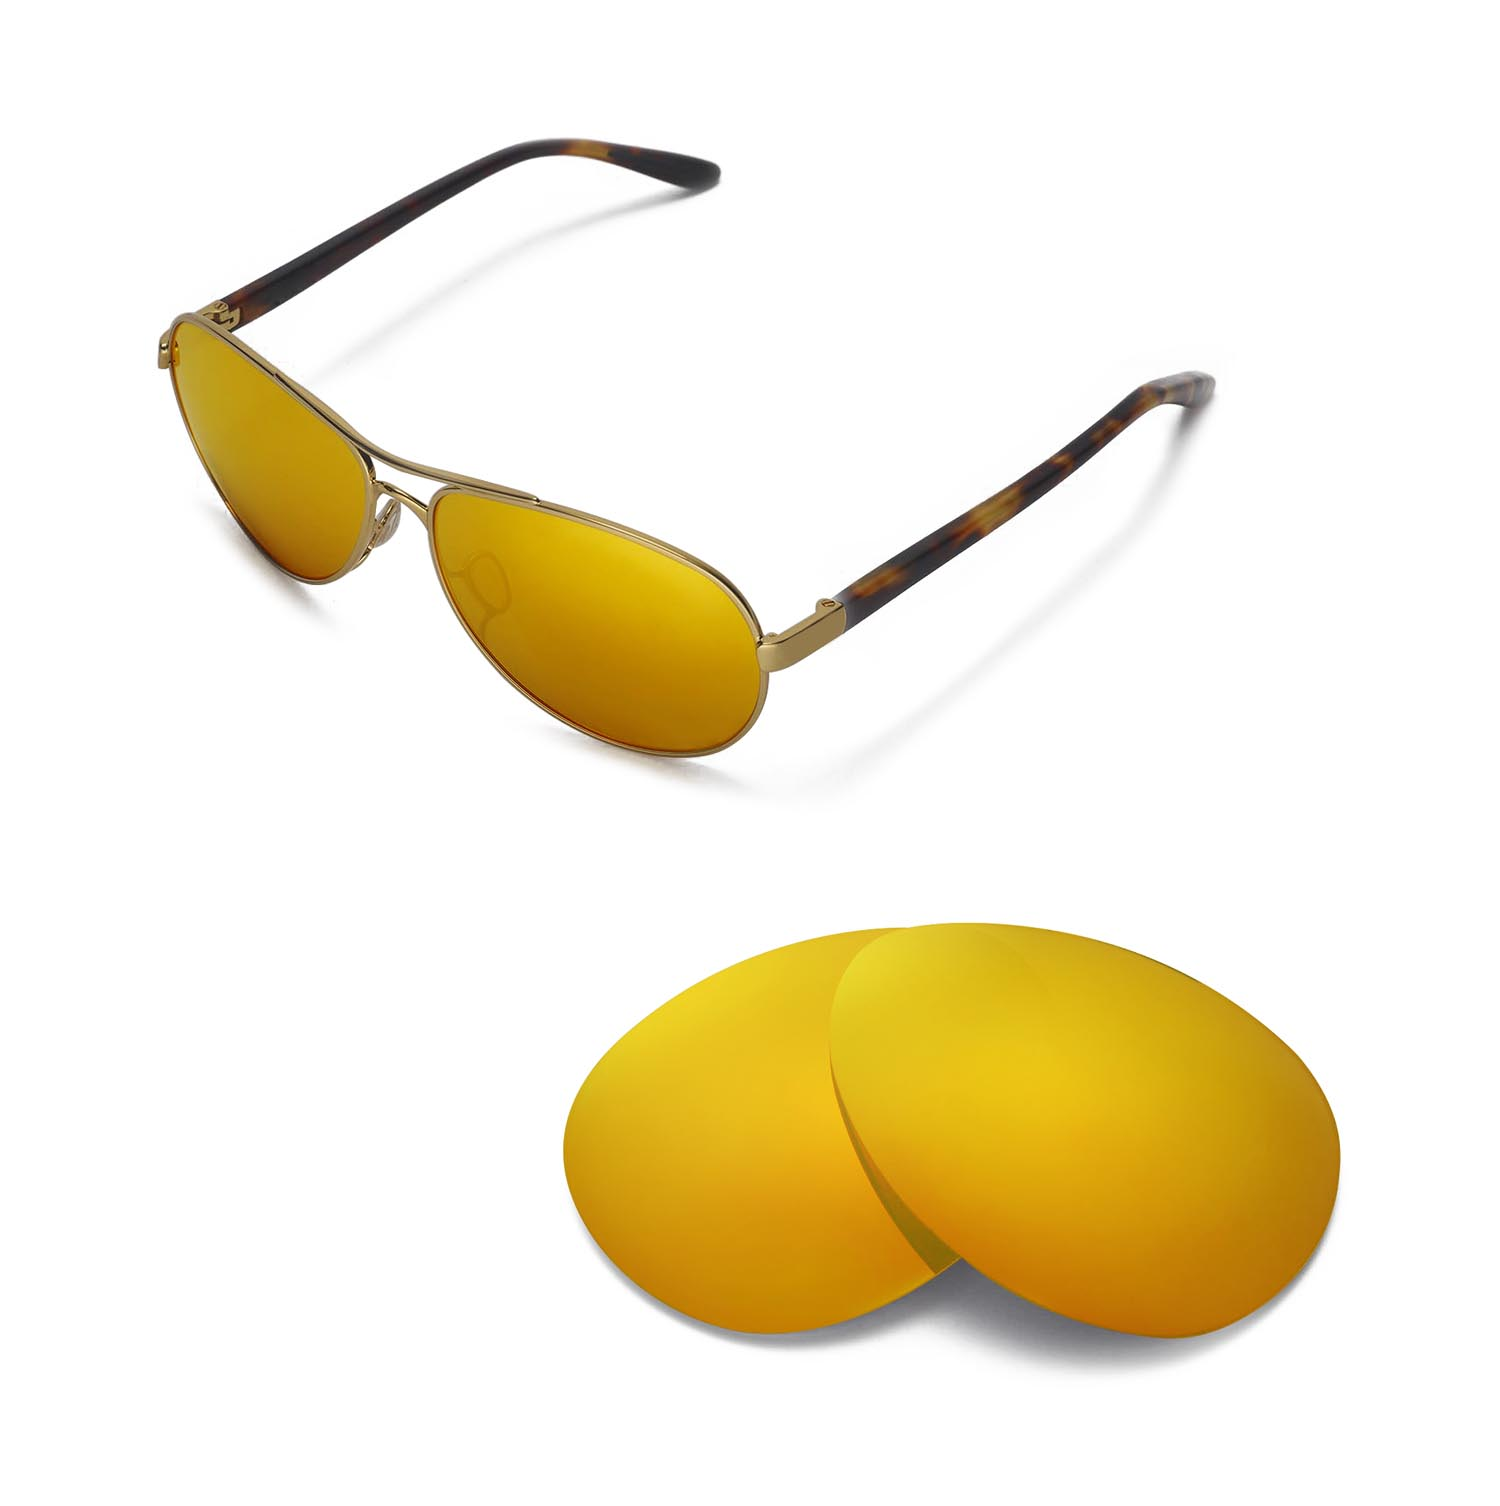 cdde9d2e1b71e Details about New Walleva Polarized 24K Gold Lenses For Oakley Feedback  Sunglasses